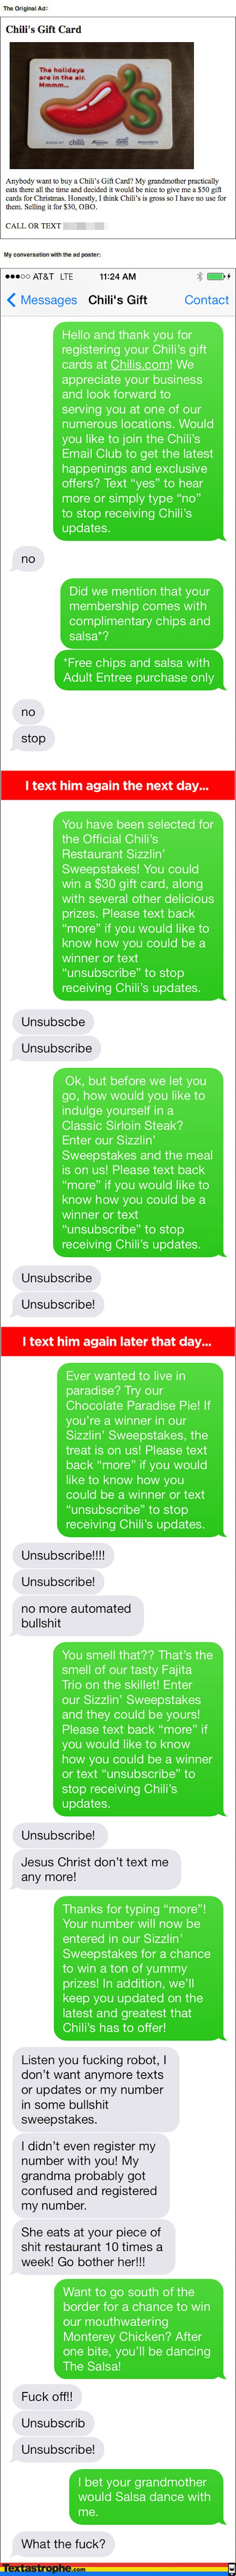 Textastrophe Pulls Off Hilarious Texting Pranks On Unsuspecting Phone Numbers